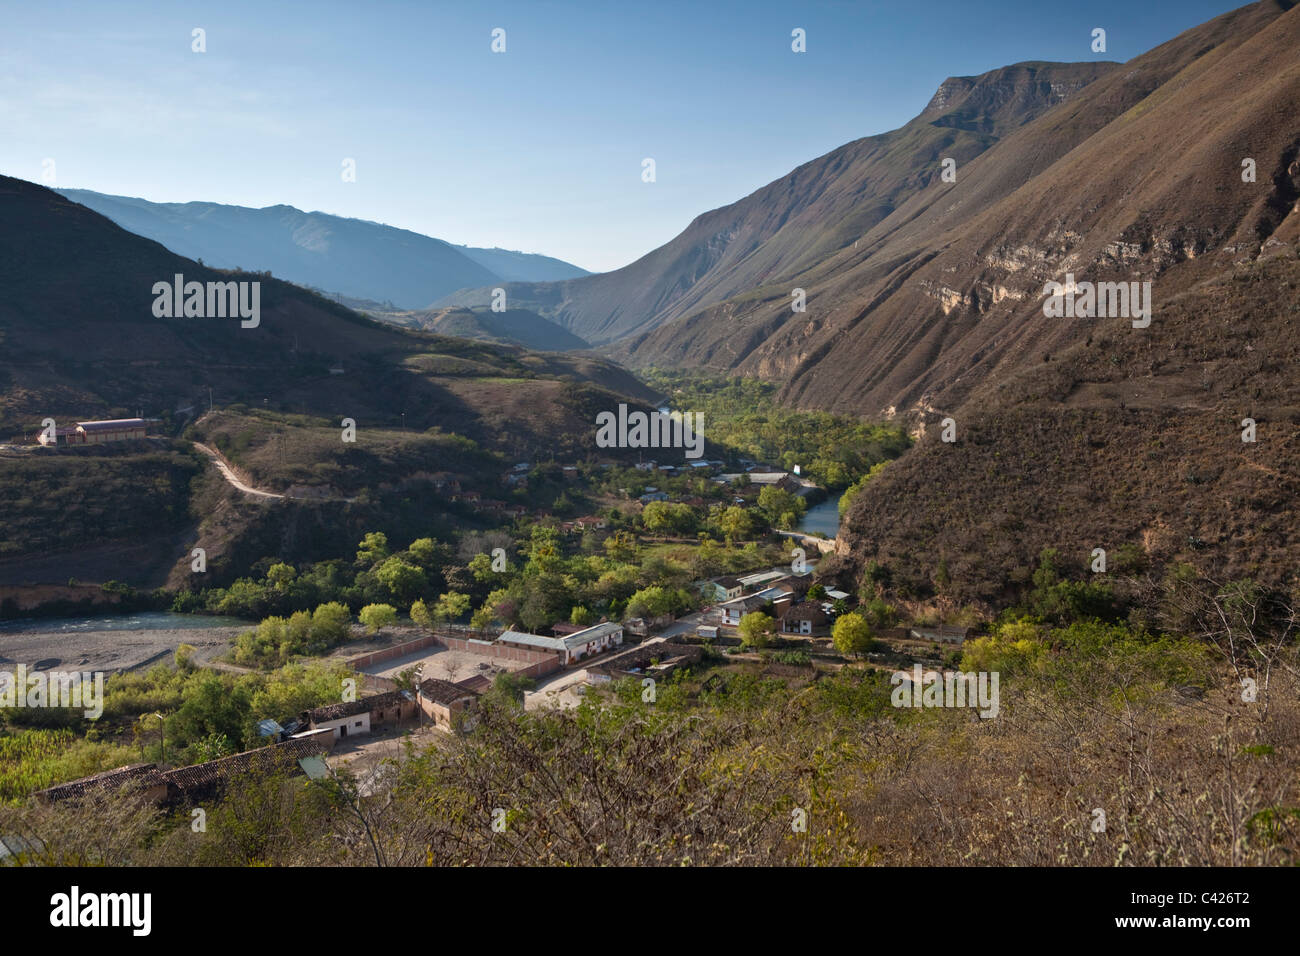 Peru, Panoramic view of hamlet near Chachapoyas. - Stock Image